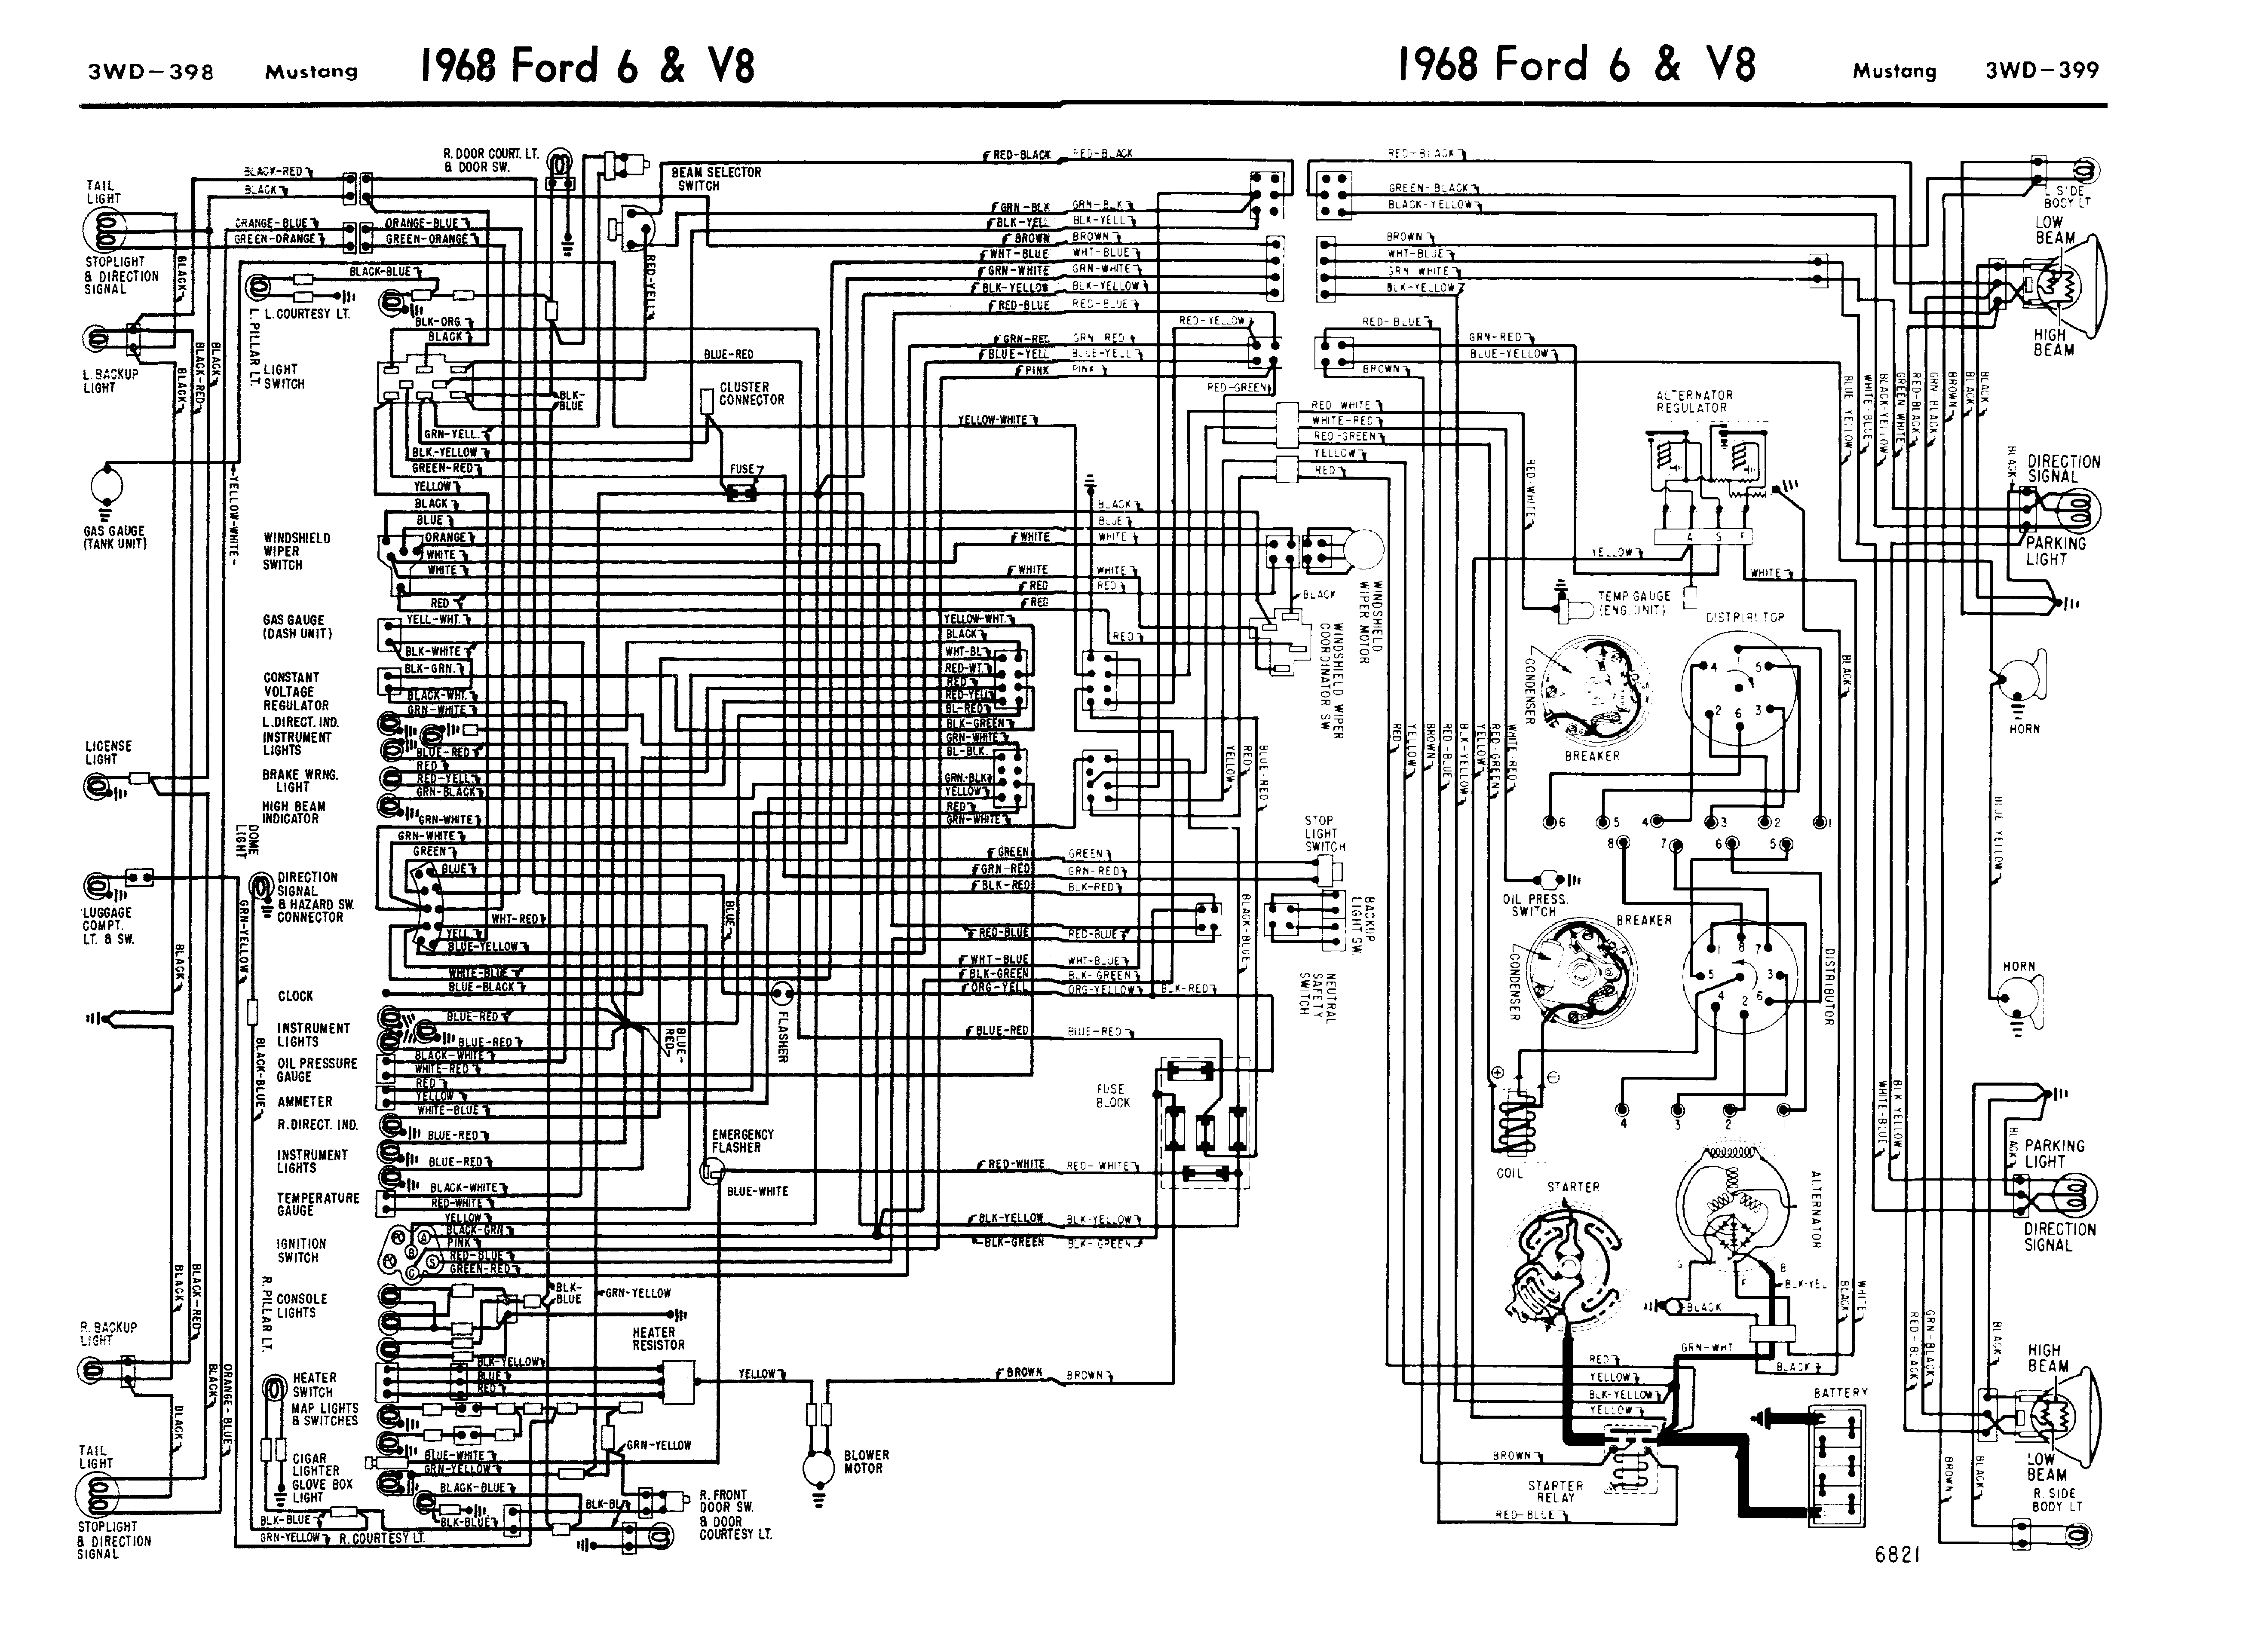 68mustang_wiring_guide1 1968 mustang wiring diagrams evolving software Online Car Wiring Diagrams at panicattacktreatment.co